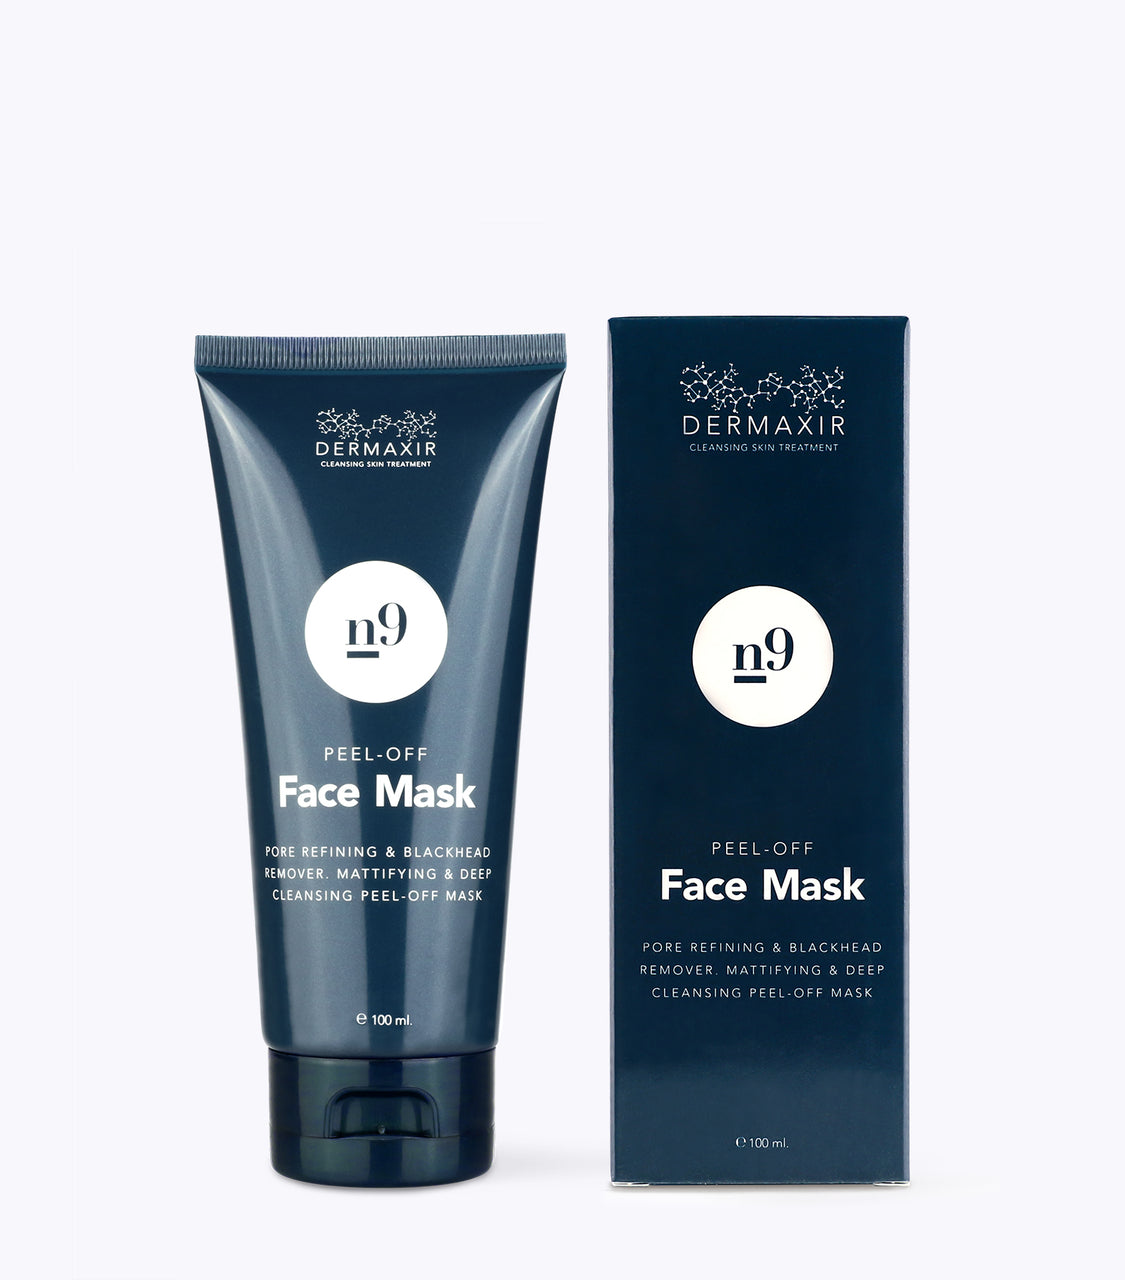 n9 Peel-off Face Mask - dermaxir